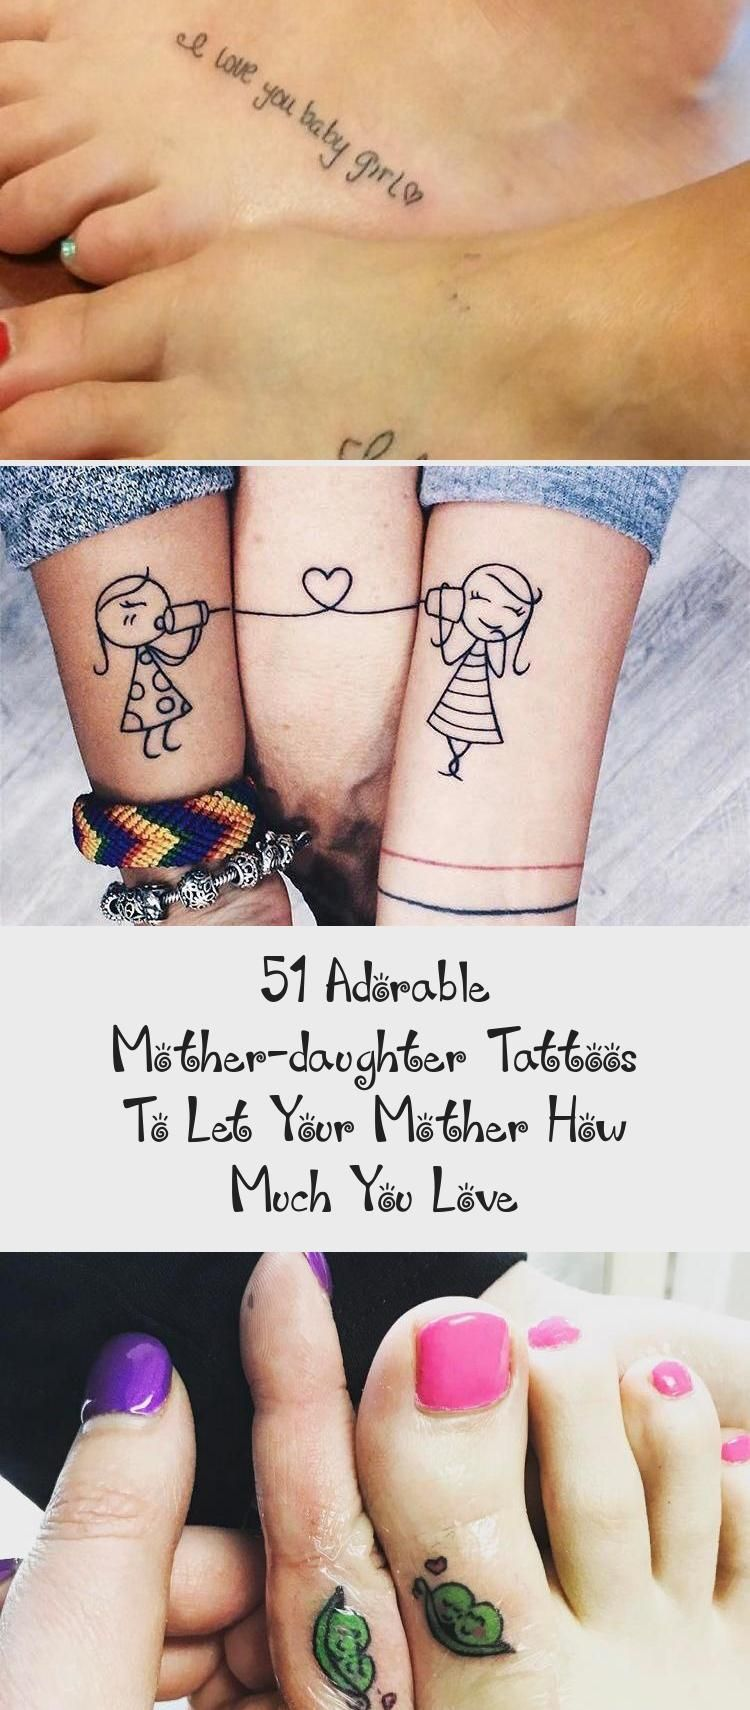 51 Adorable Mother-daughter Tattoos To Let Your Mother How Much You Love in 2020 | Tattoos for daughters, Mother daughter tattoos, Tattoos